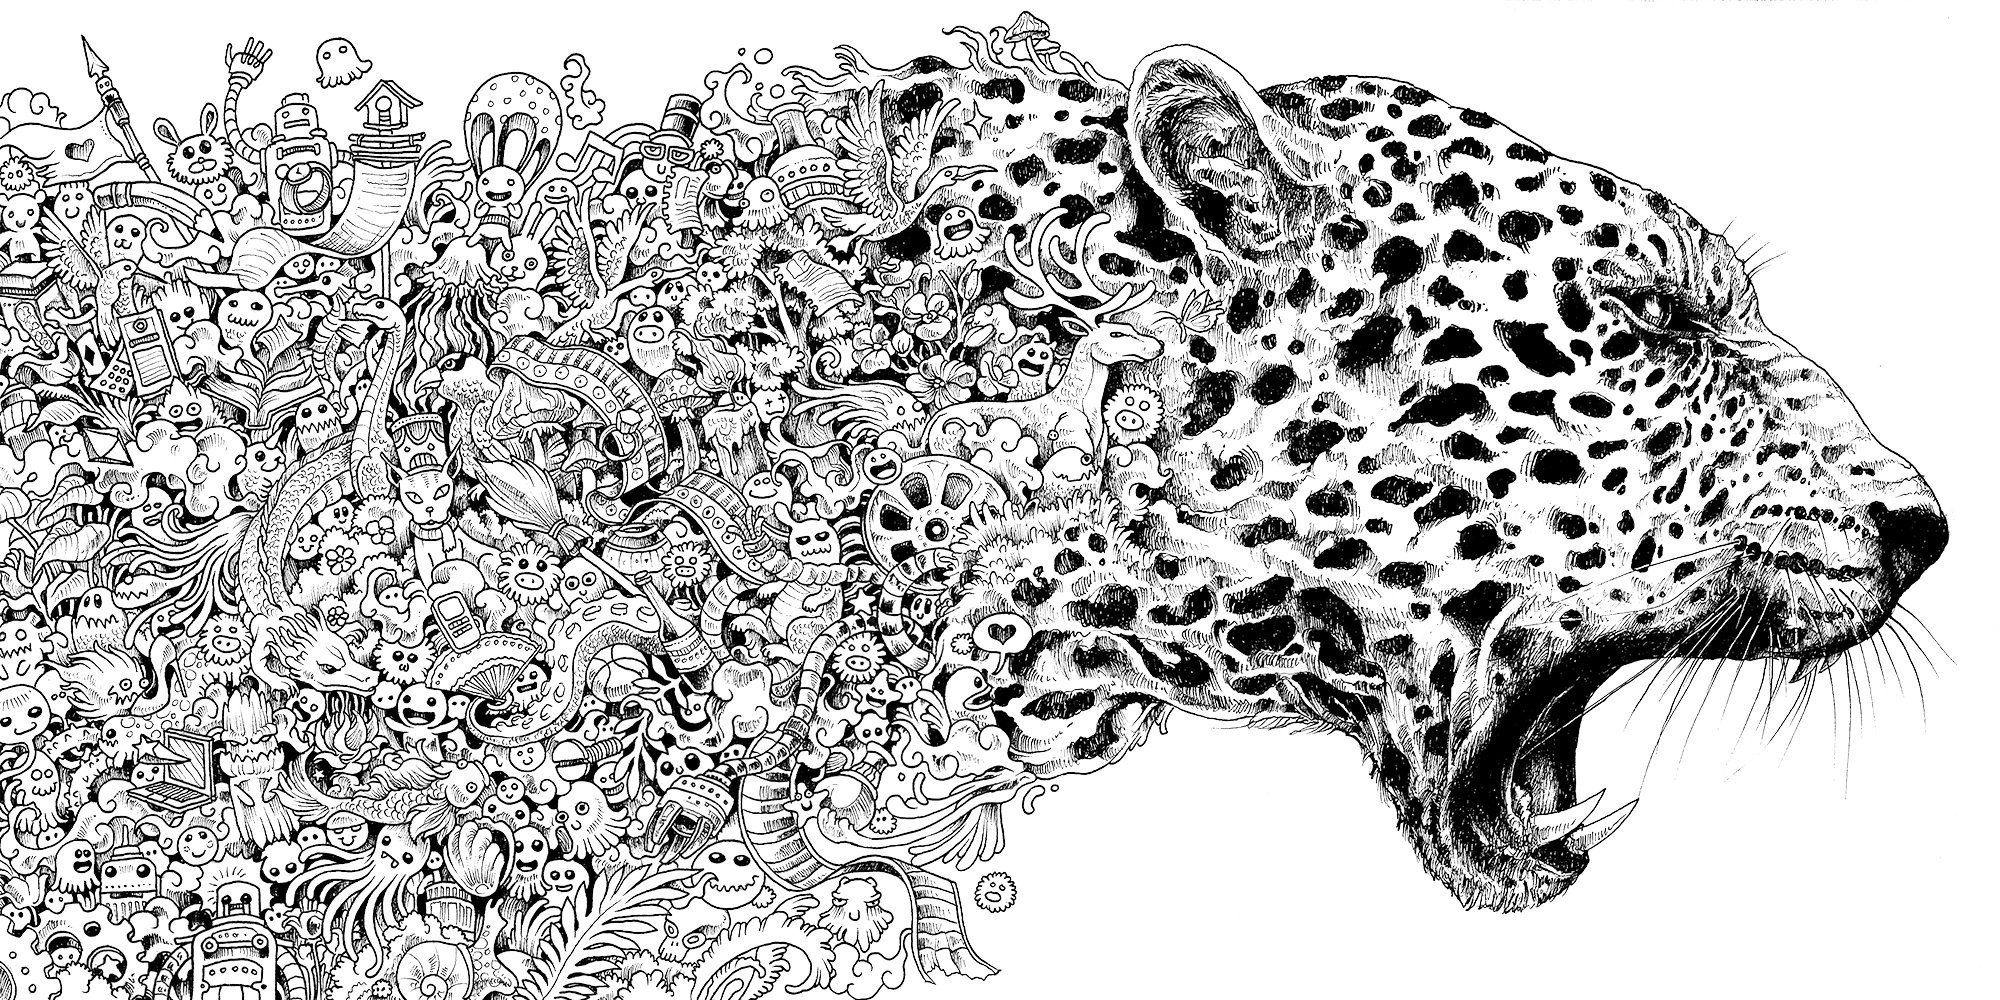 Animorphia Coloring Book in 2019 | Crafts | Adult coloring pages ...